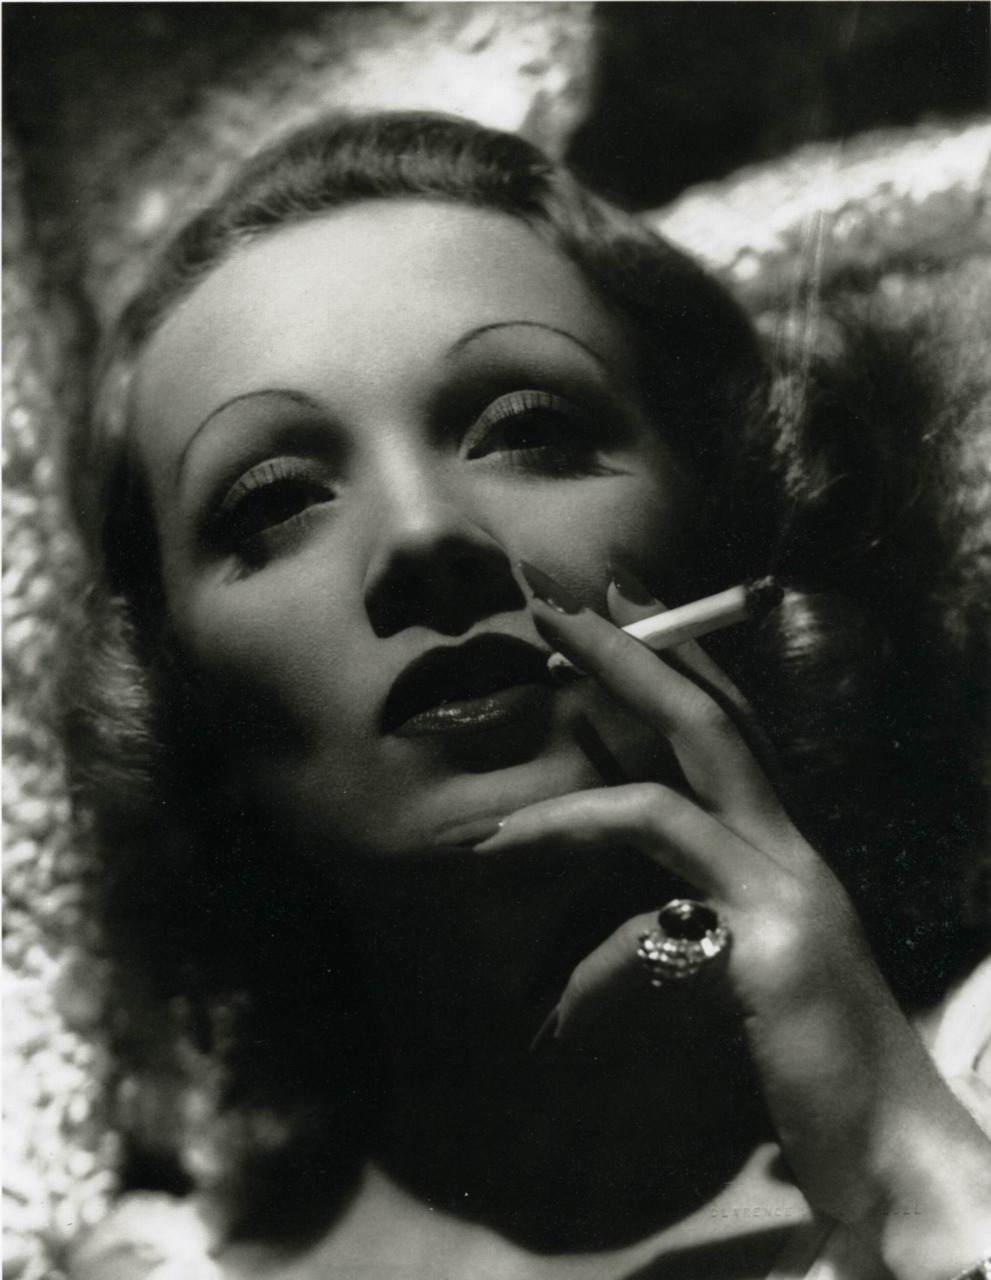 Marlene Dietrich having a puff